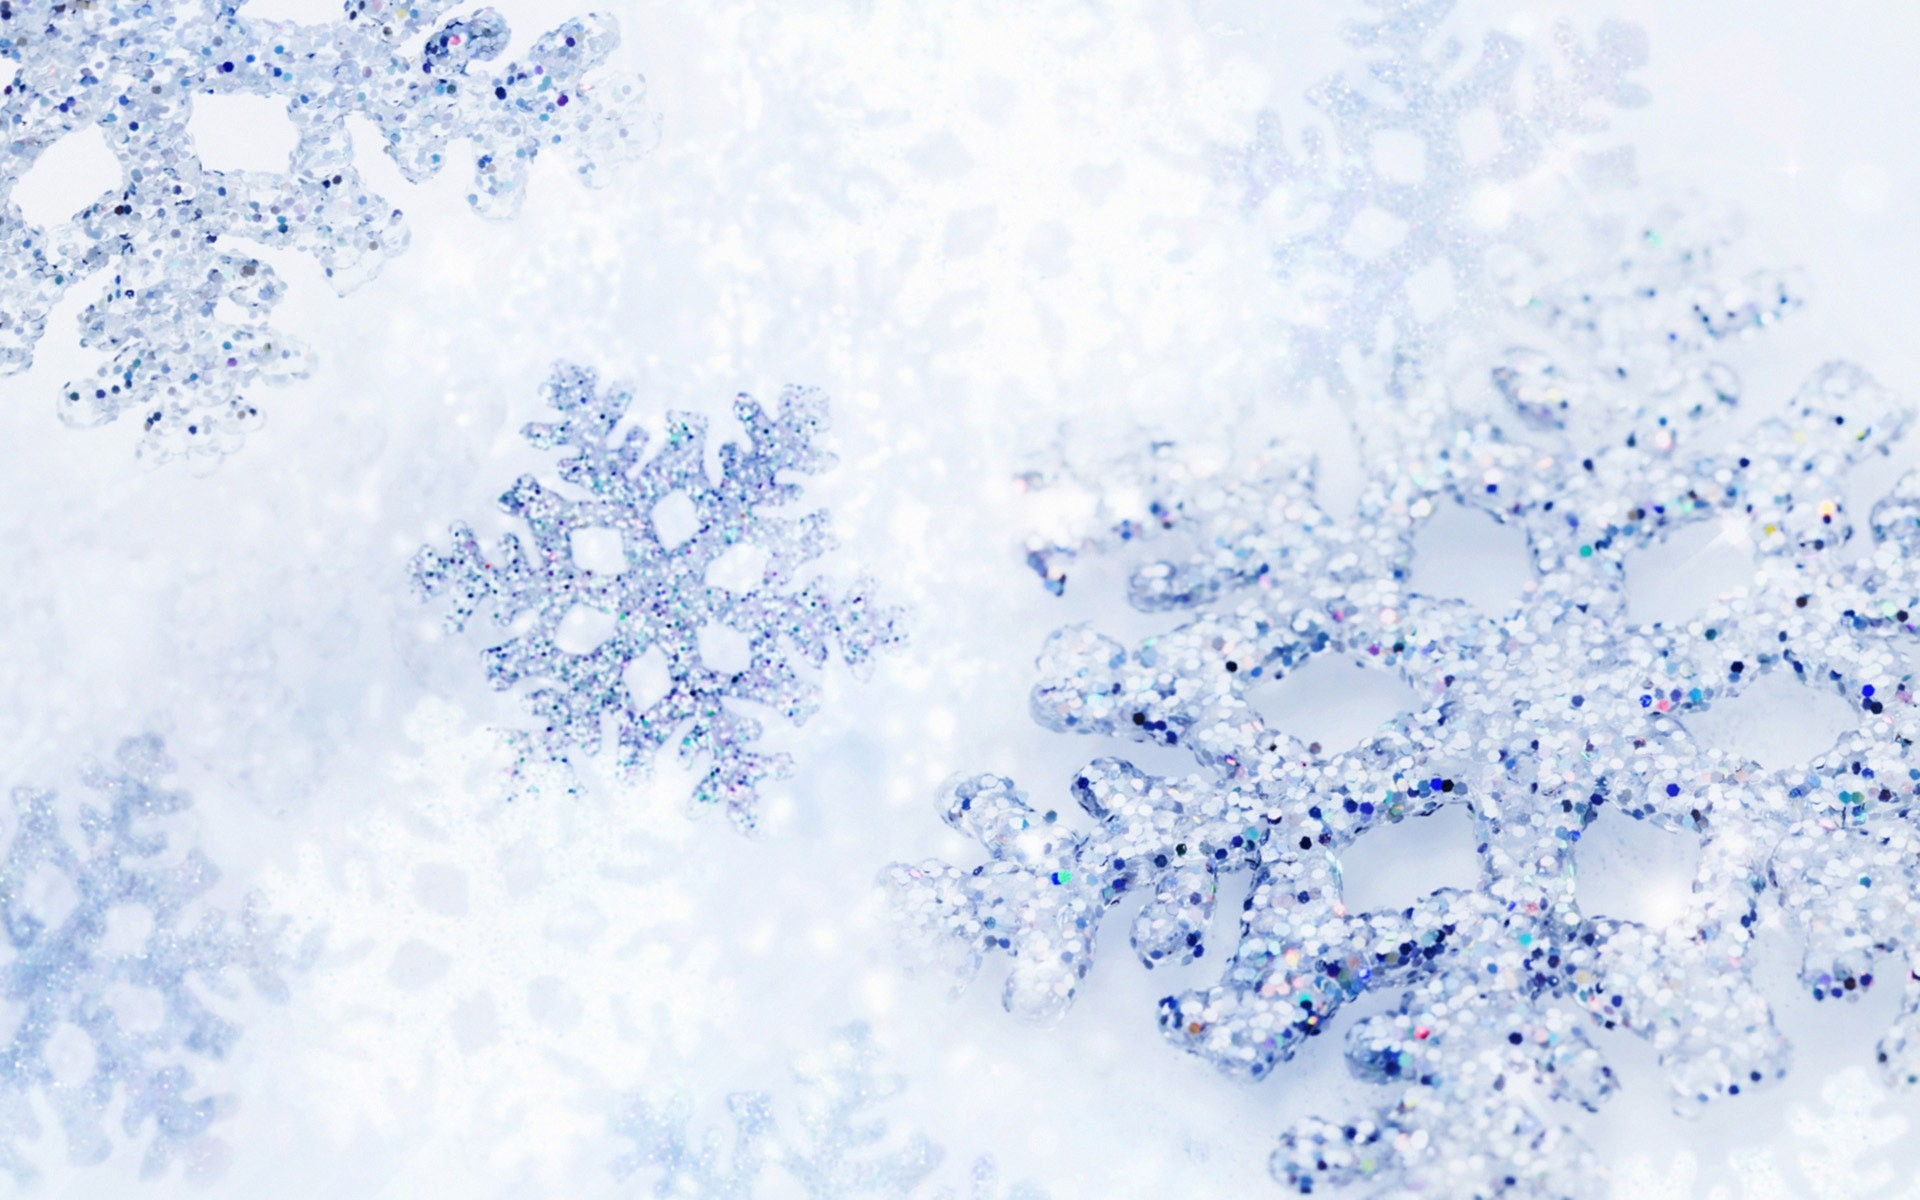 Snow Falling Wallpaper Download Snow Backgrounds And Wallpaper 64 Images